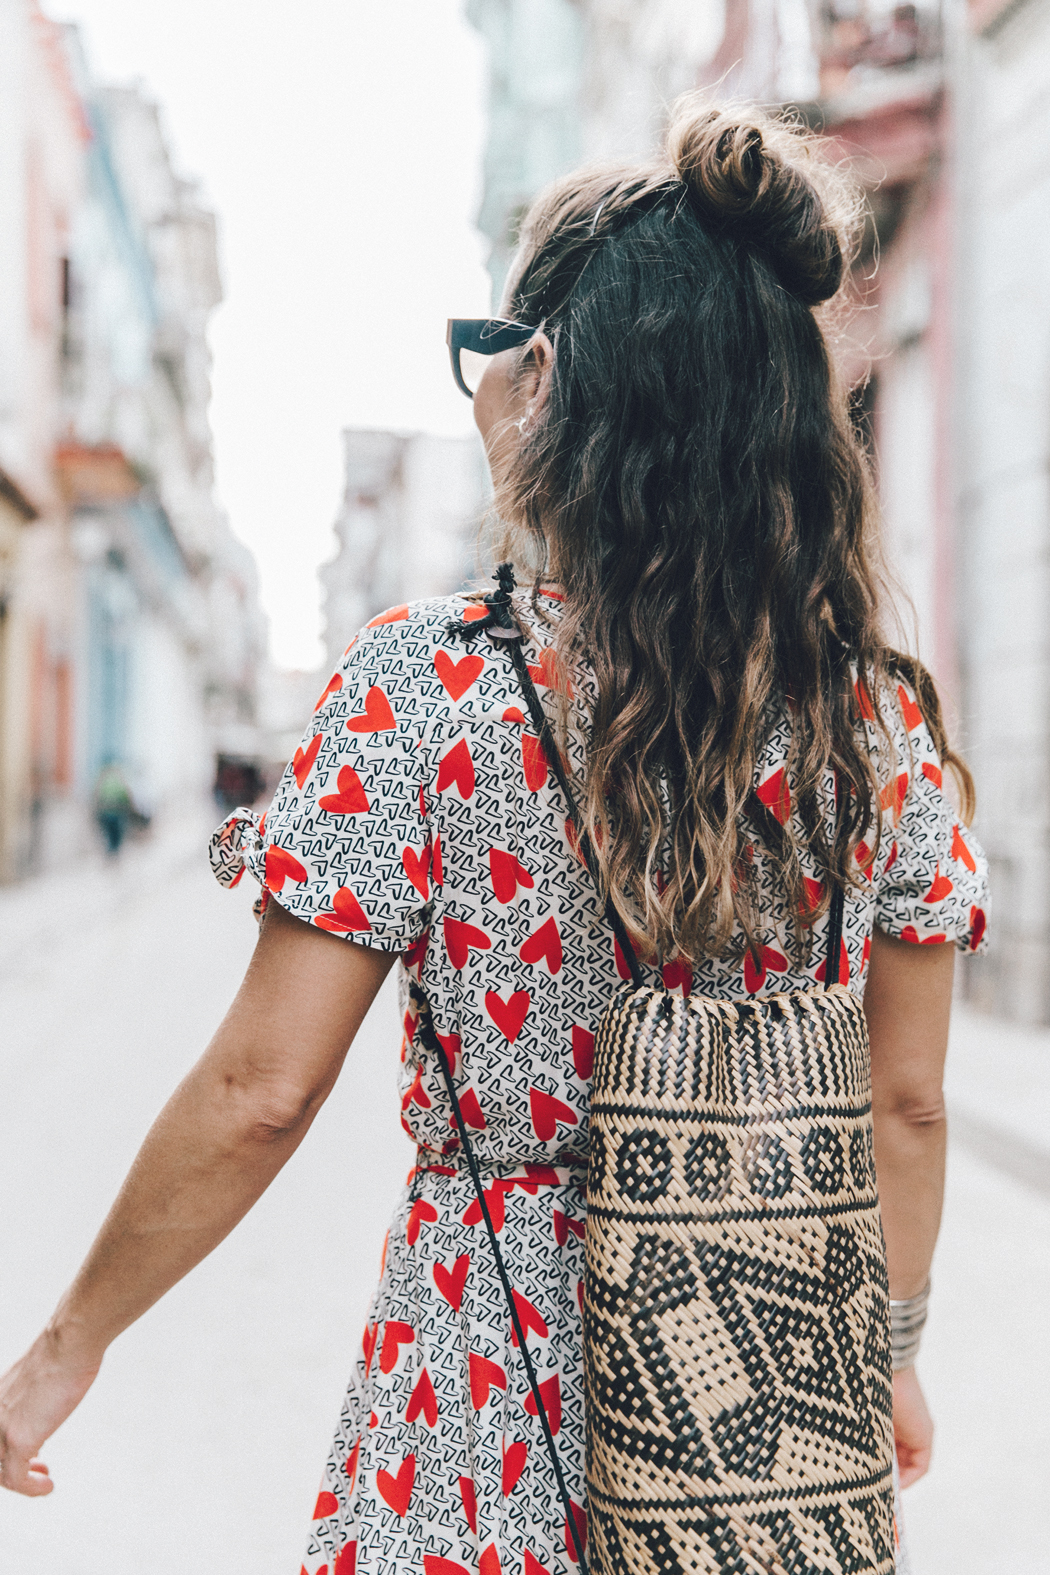 Cuba-La_Habana_Vieja-Hearts_Dress-Styled_By_Me-Aloha_Espadrilles-Outfit-Street_Style-Dress-Backpack-22